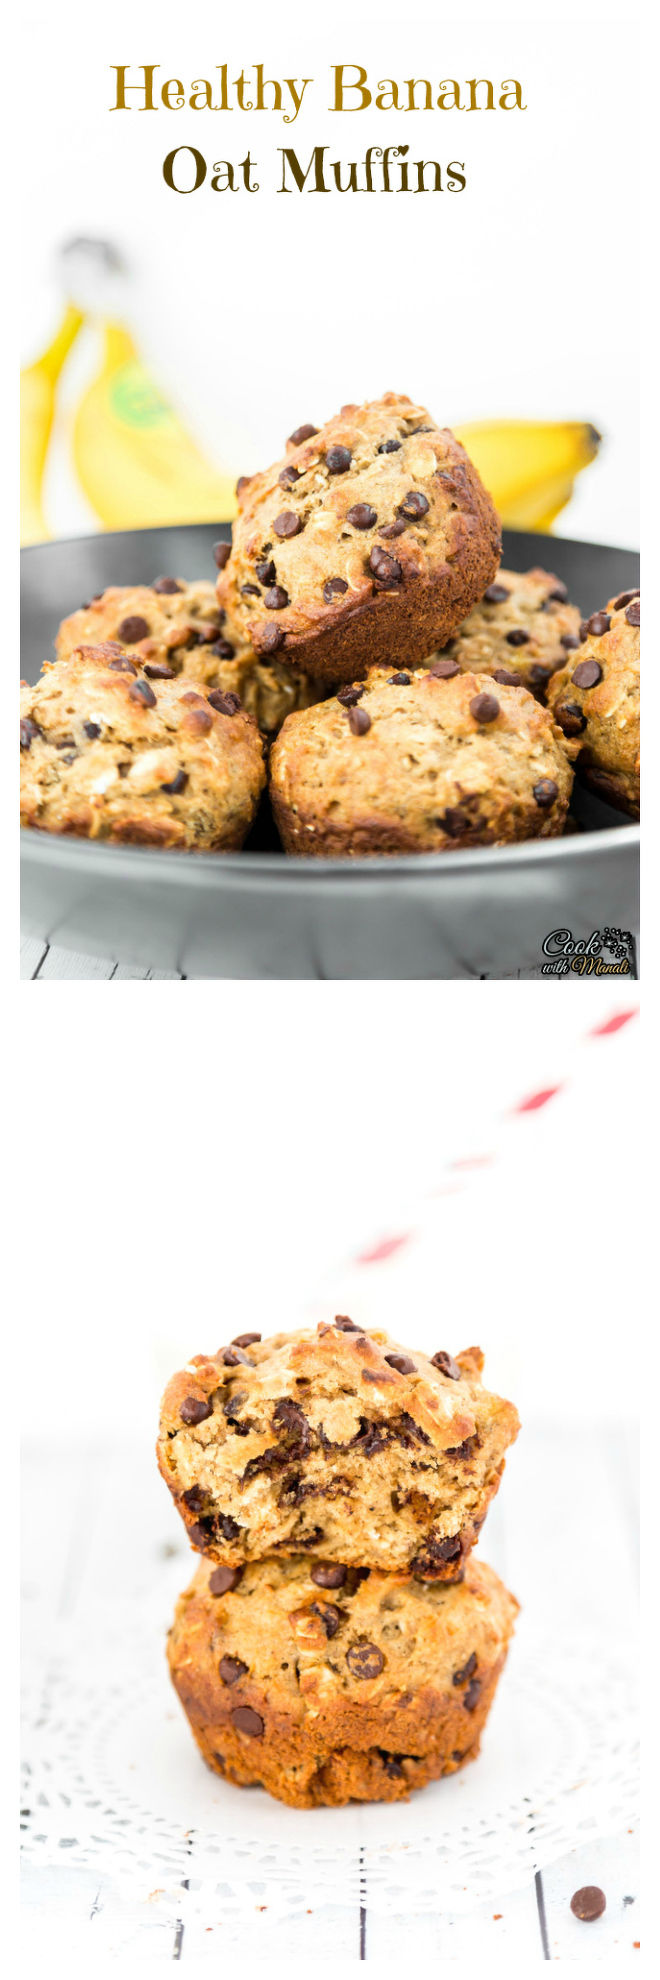 Healthy-Banana-Oat-Muffins-Collage-nocwm